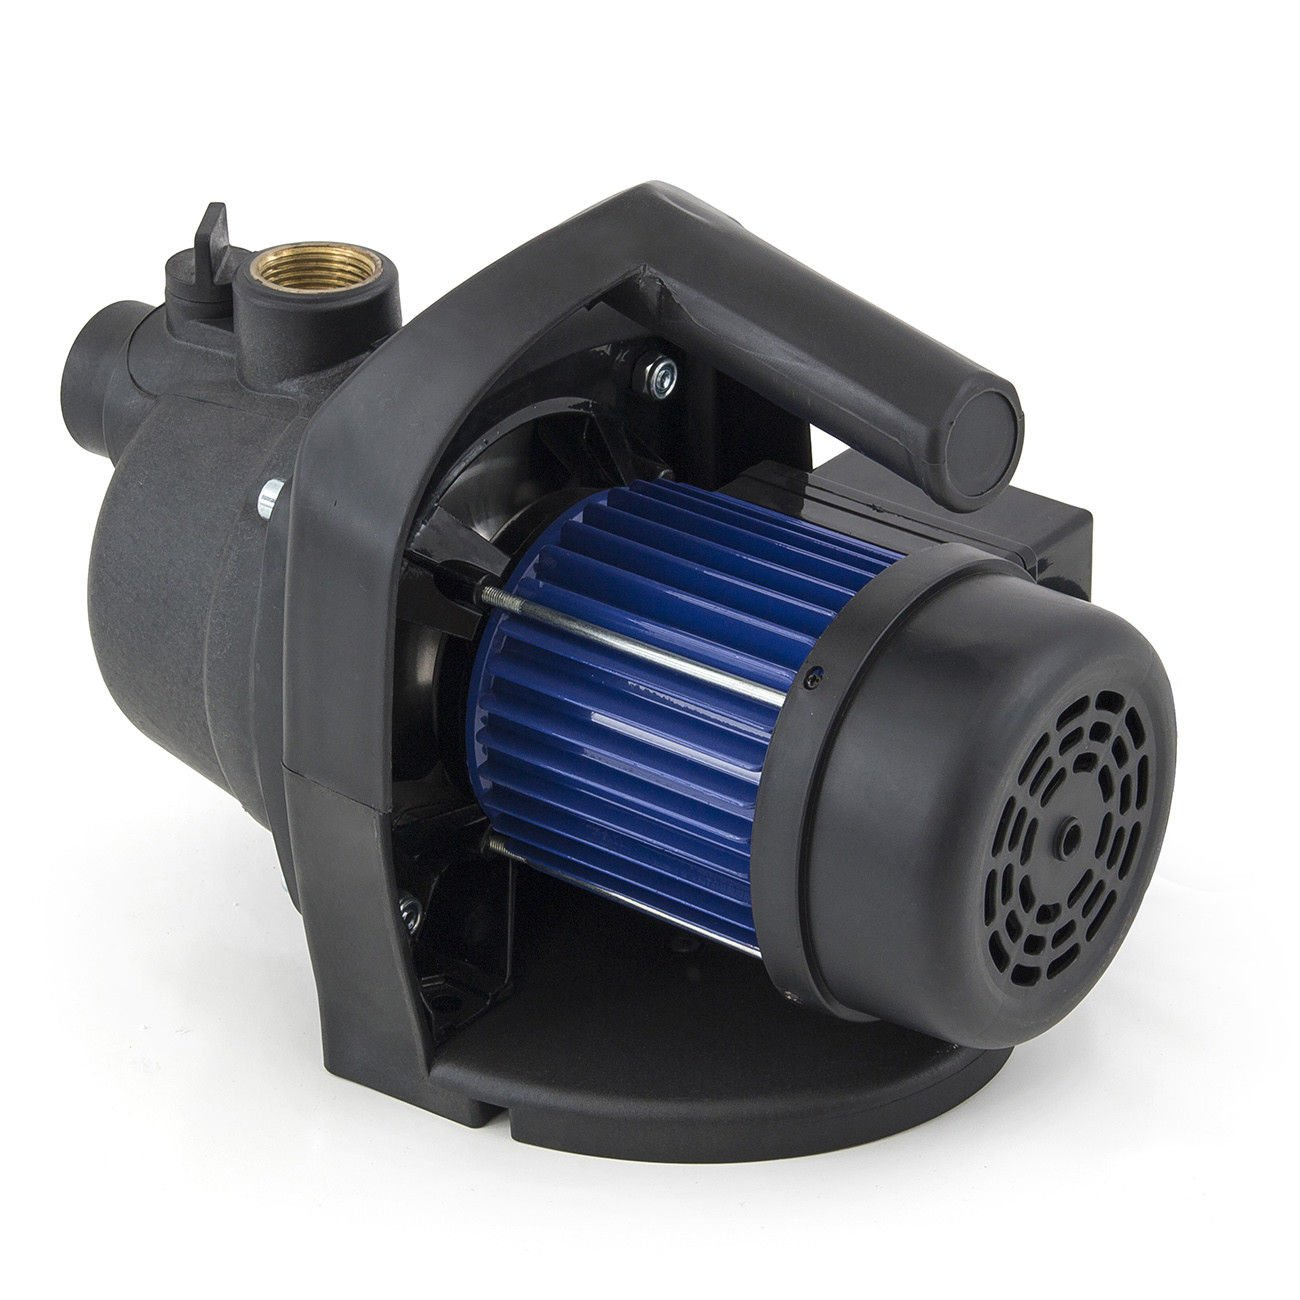 G&Gonline 925GPH Pressurized Shallow Well Water Booster Pump Whole Home Irrigation System